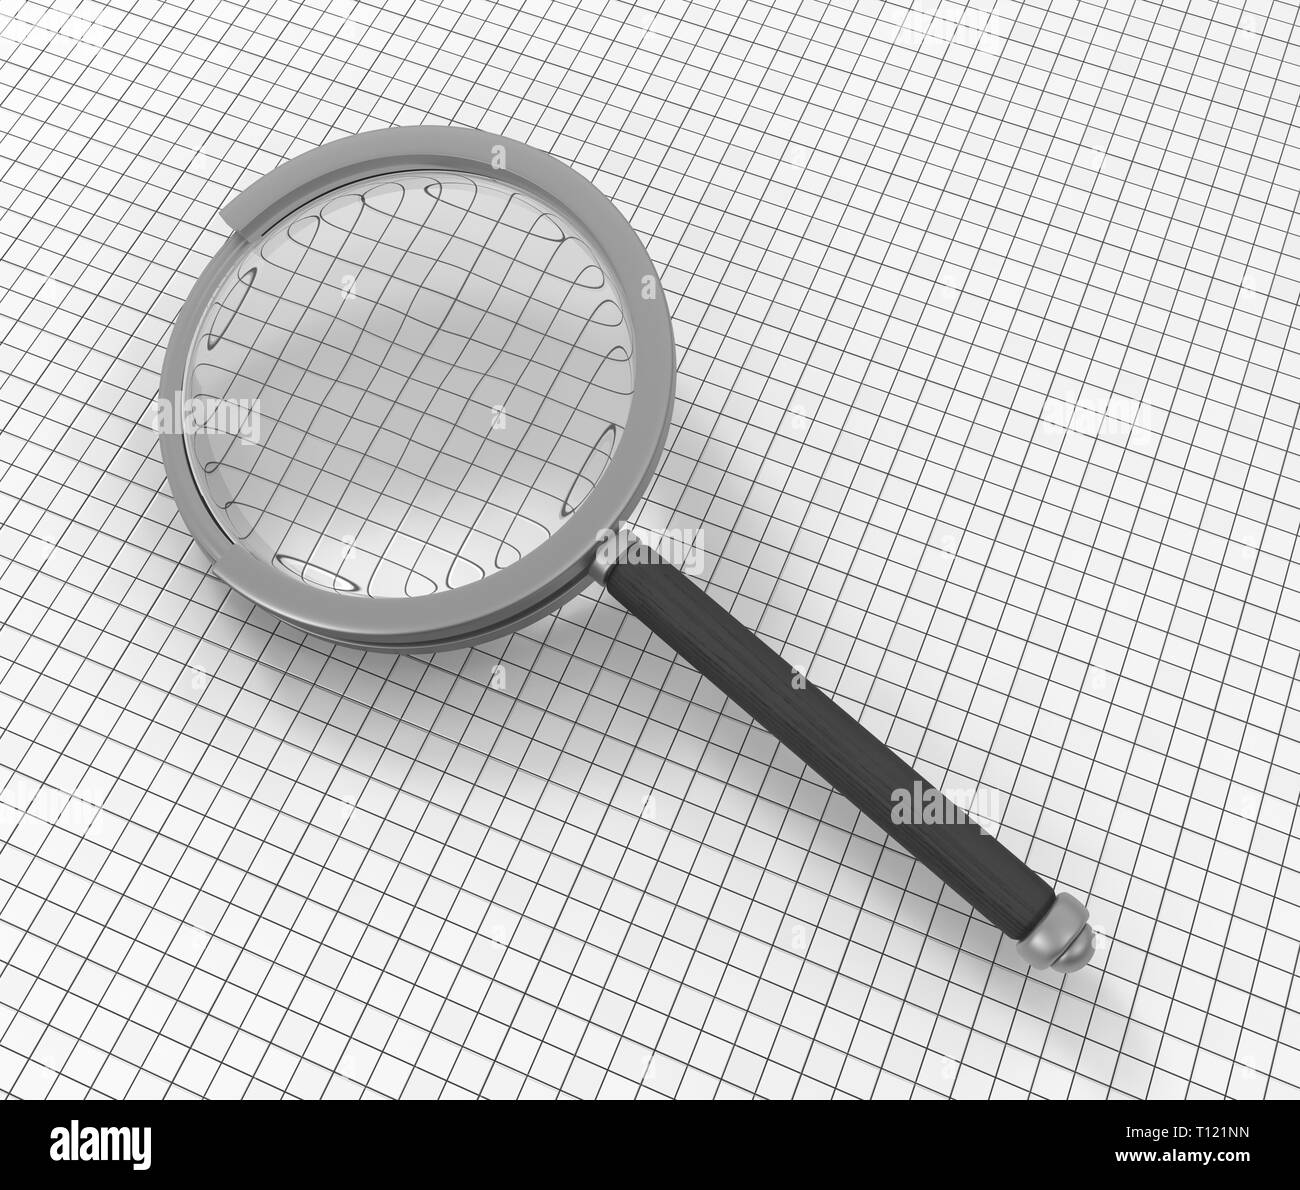 Magnifying glass search tool on paper, 3d illustration, horizontal - Stock Image